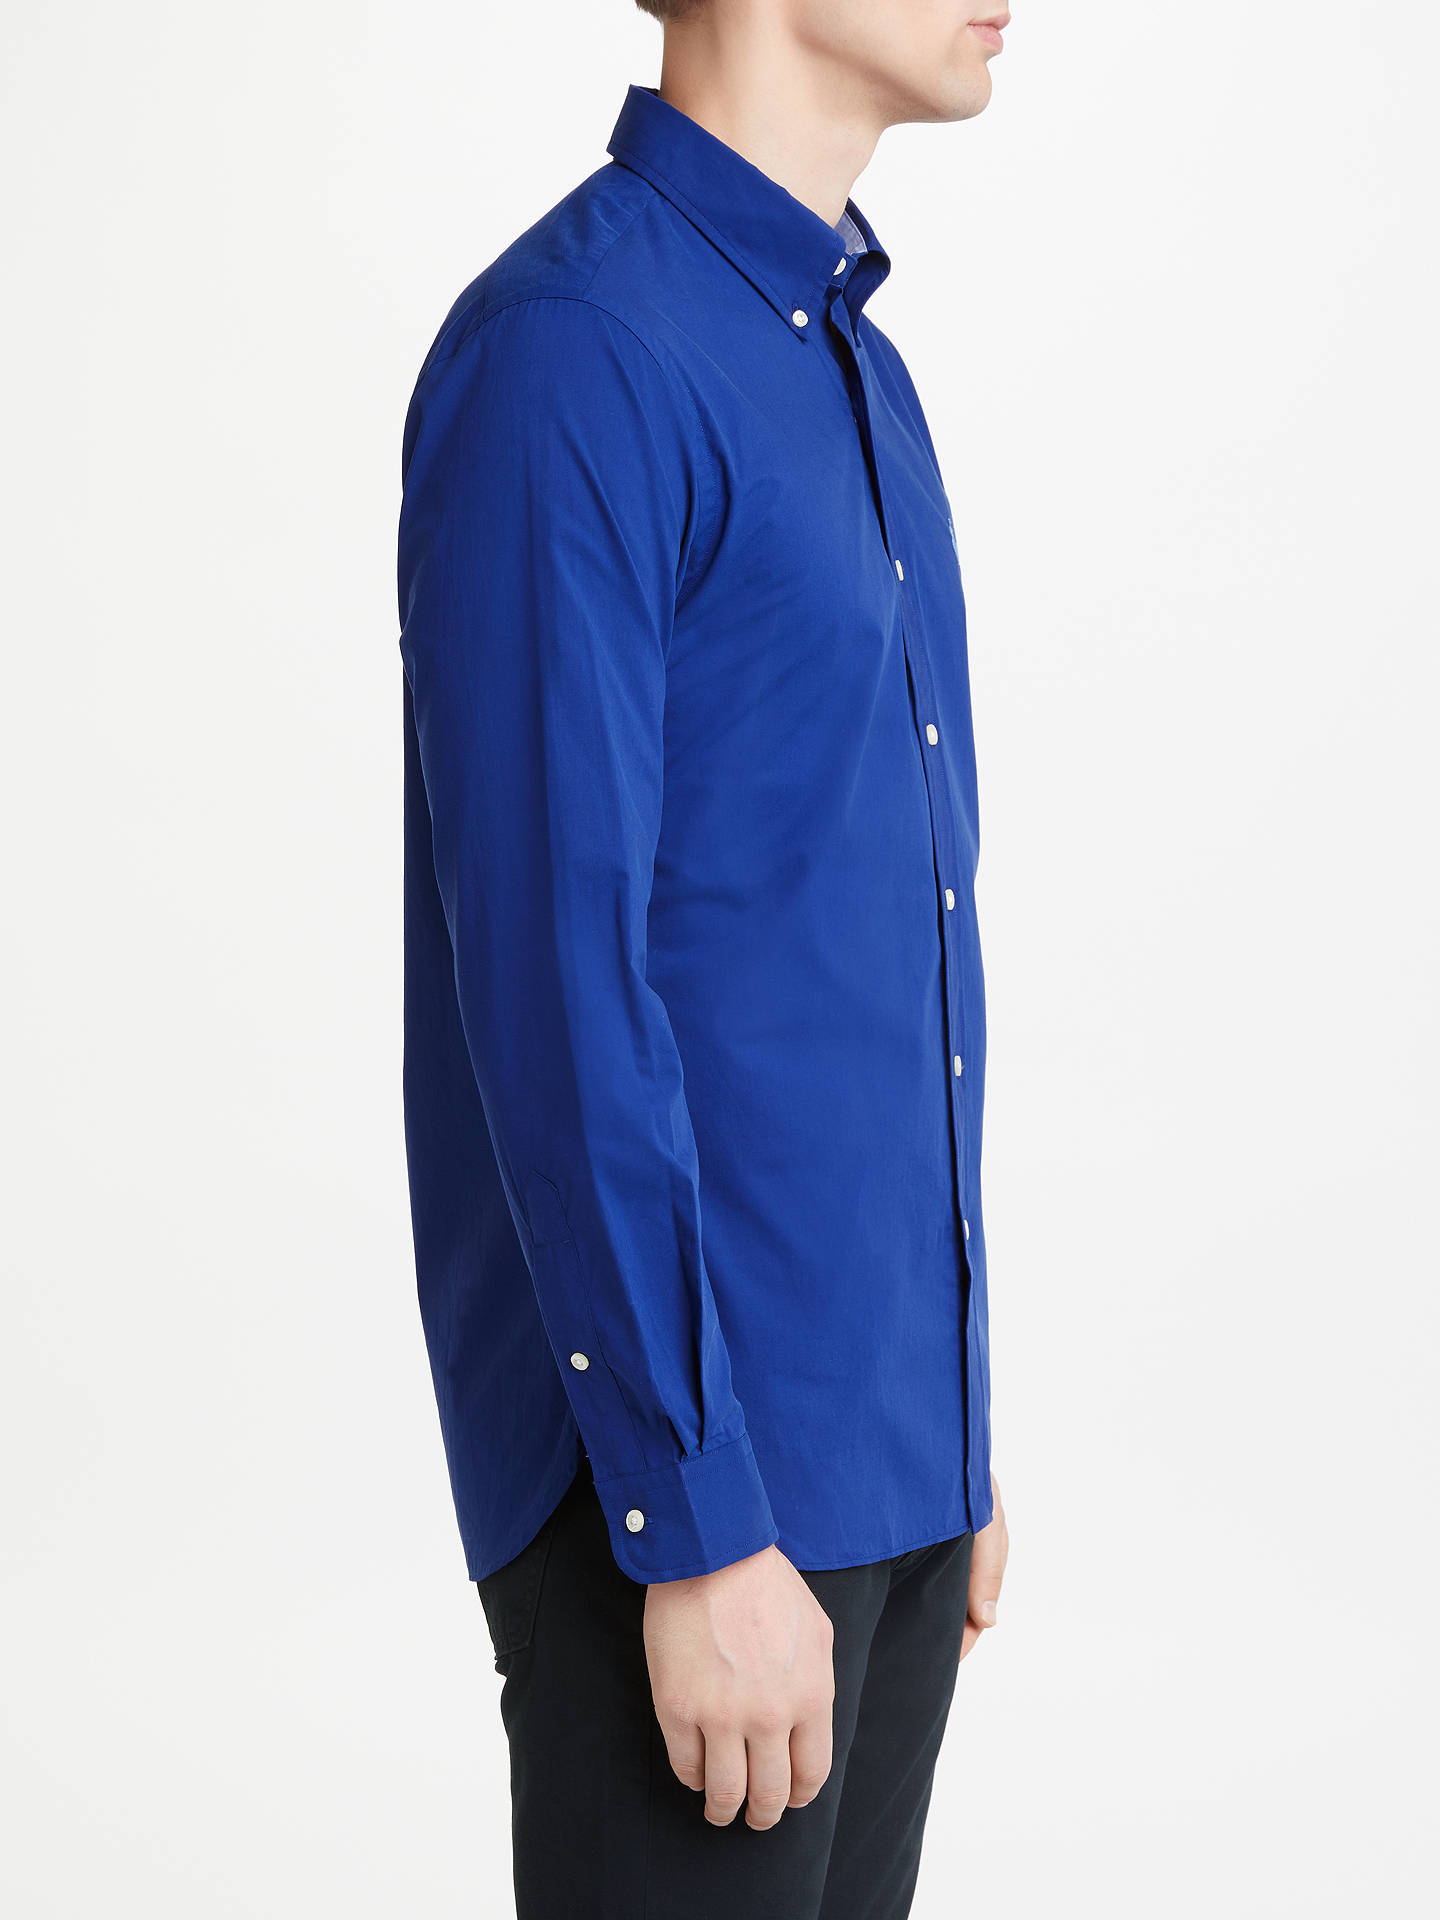 BuyPolo Ralph Lauren Slim Cotton Poplin Shirt, Mid Blue, S Online at johnlewis.com